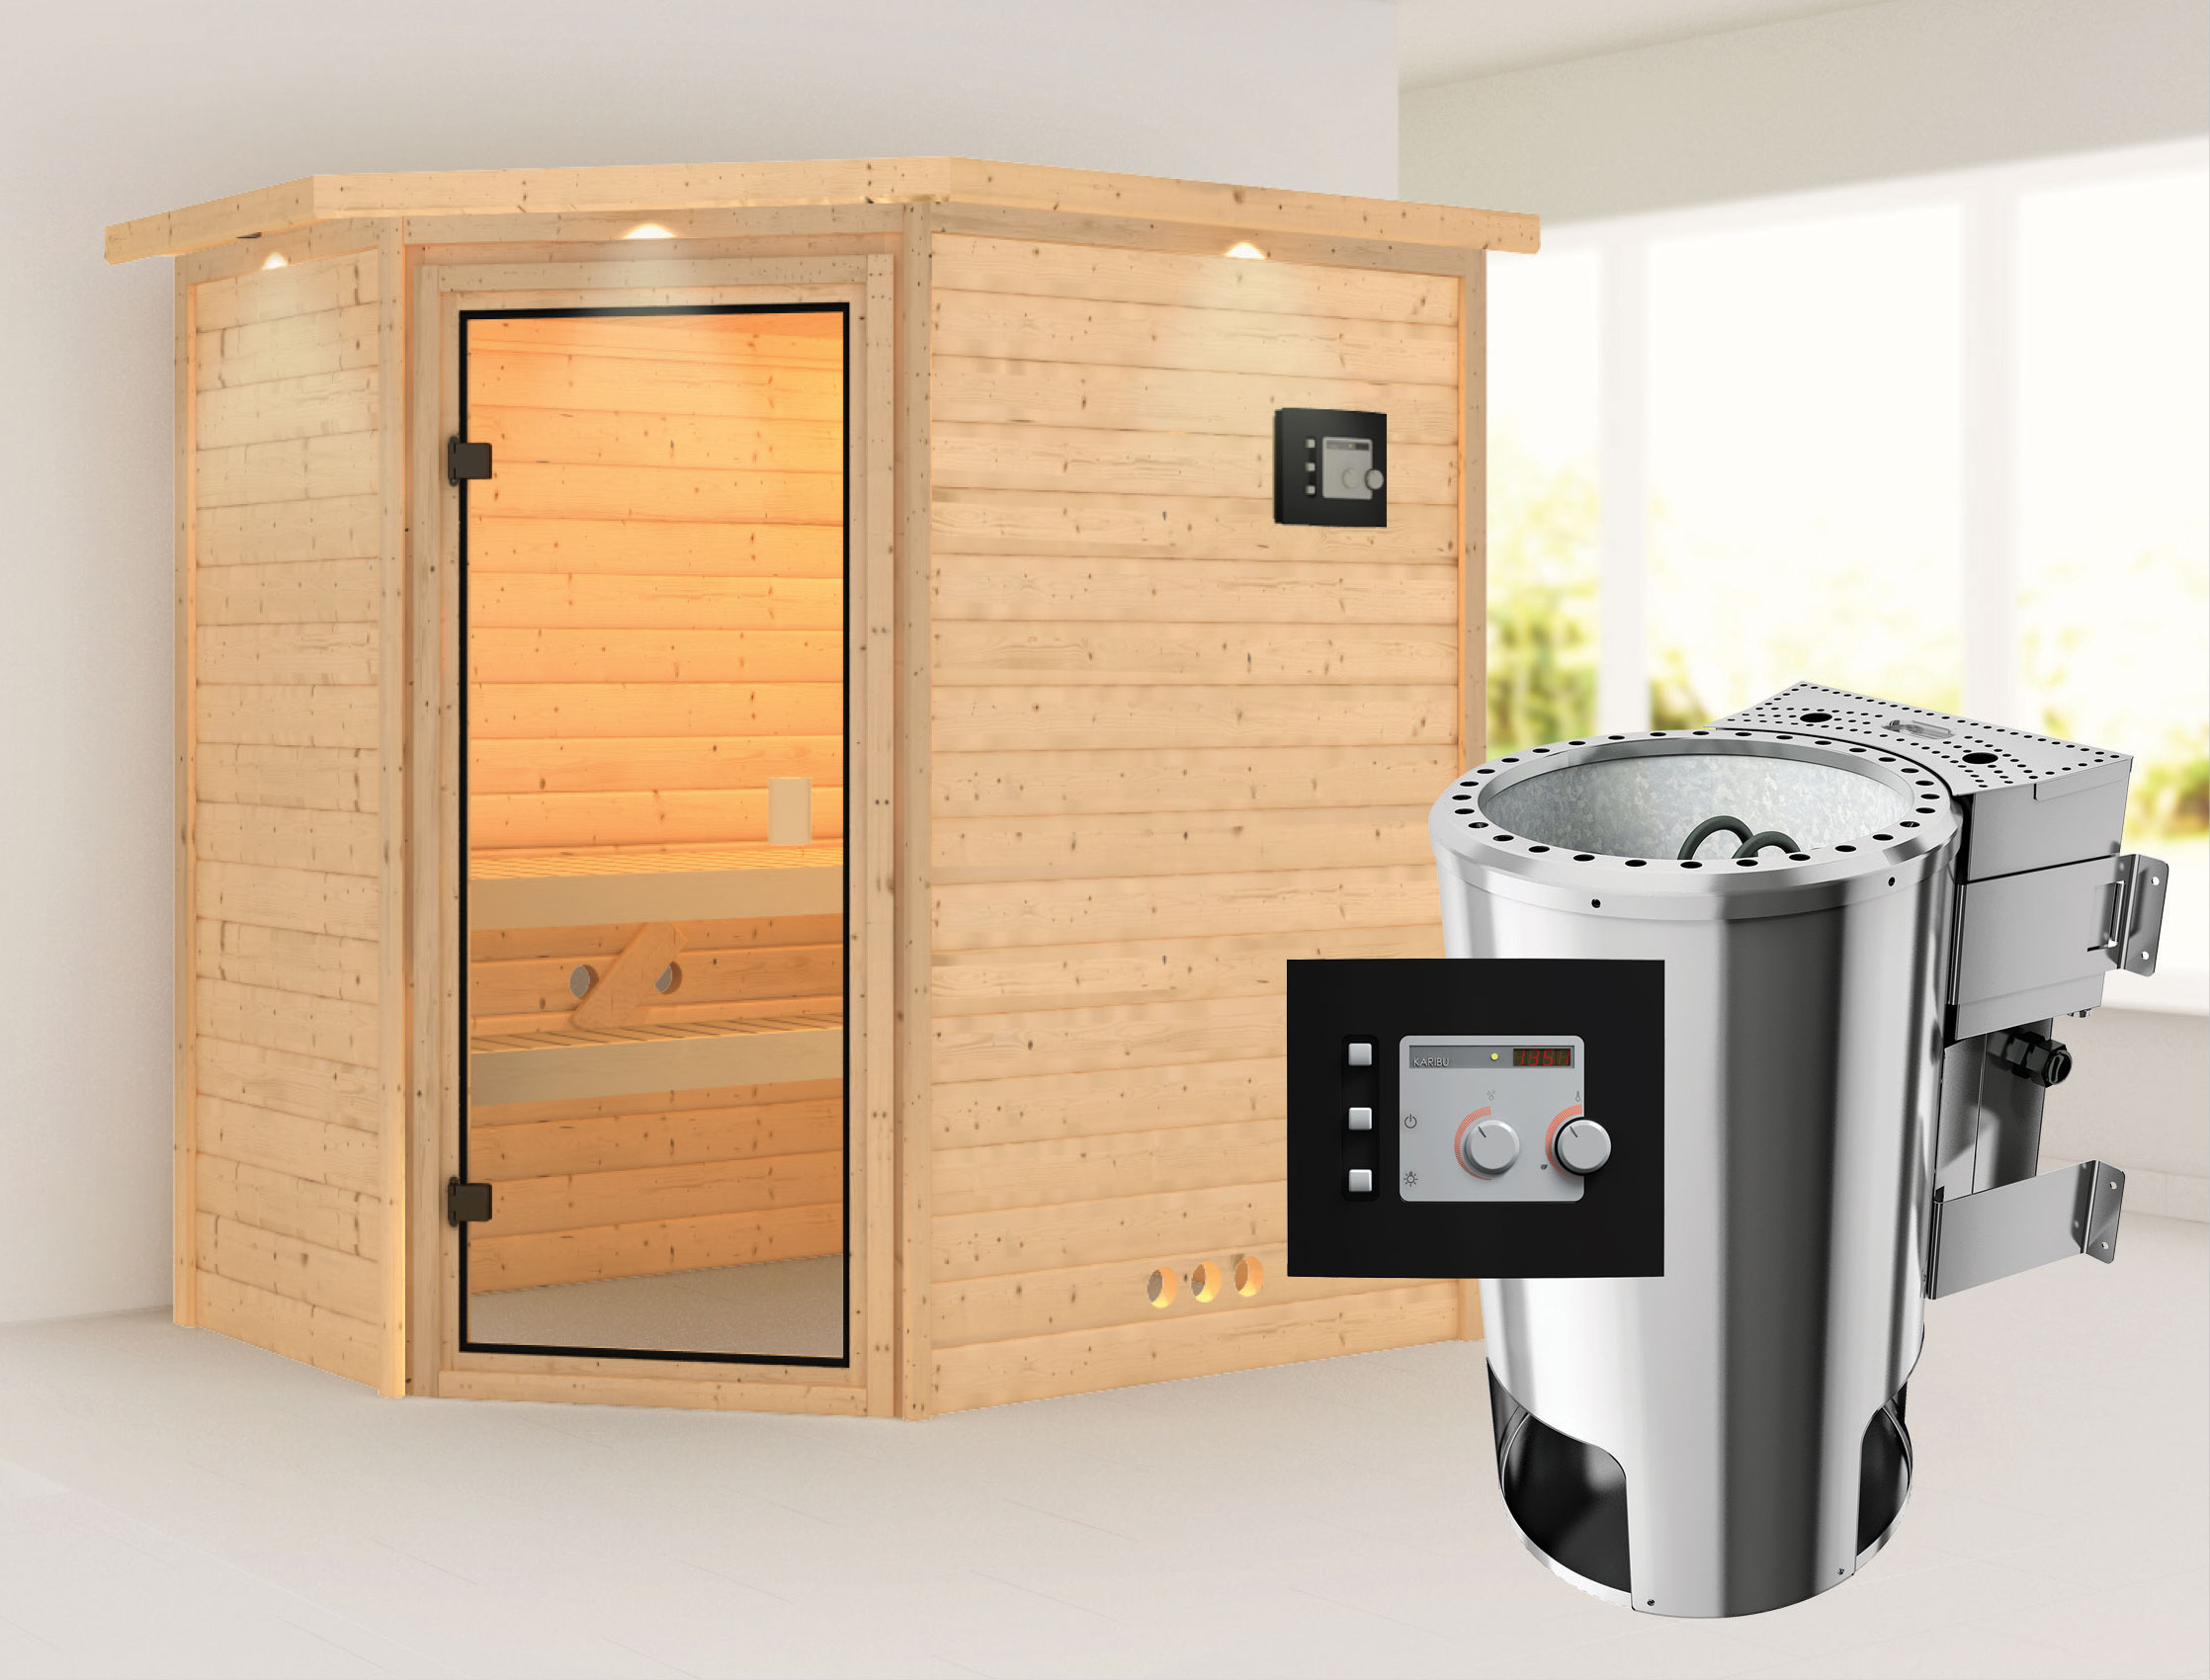 karibu sauna cilja 230 volt mit dachkranz bio saunaofen 3. Black Bedroom Furniture Sets. Home Design Ideas